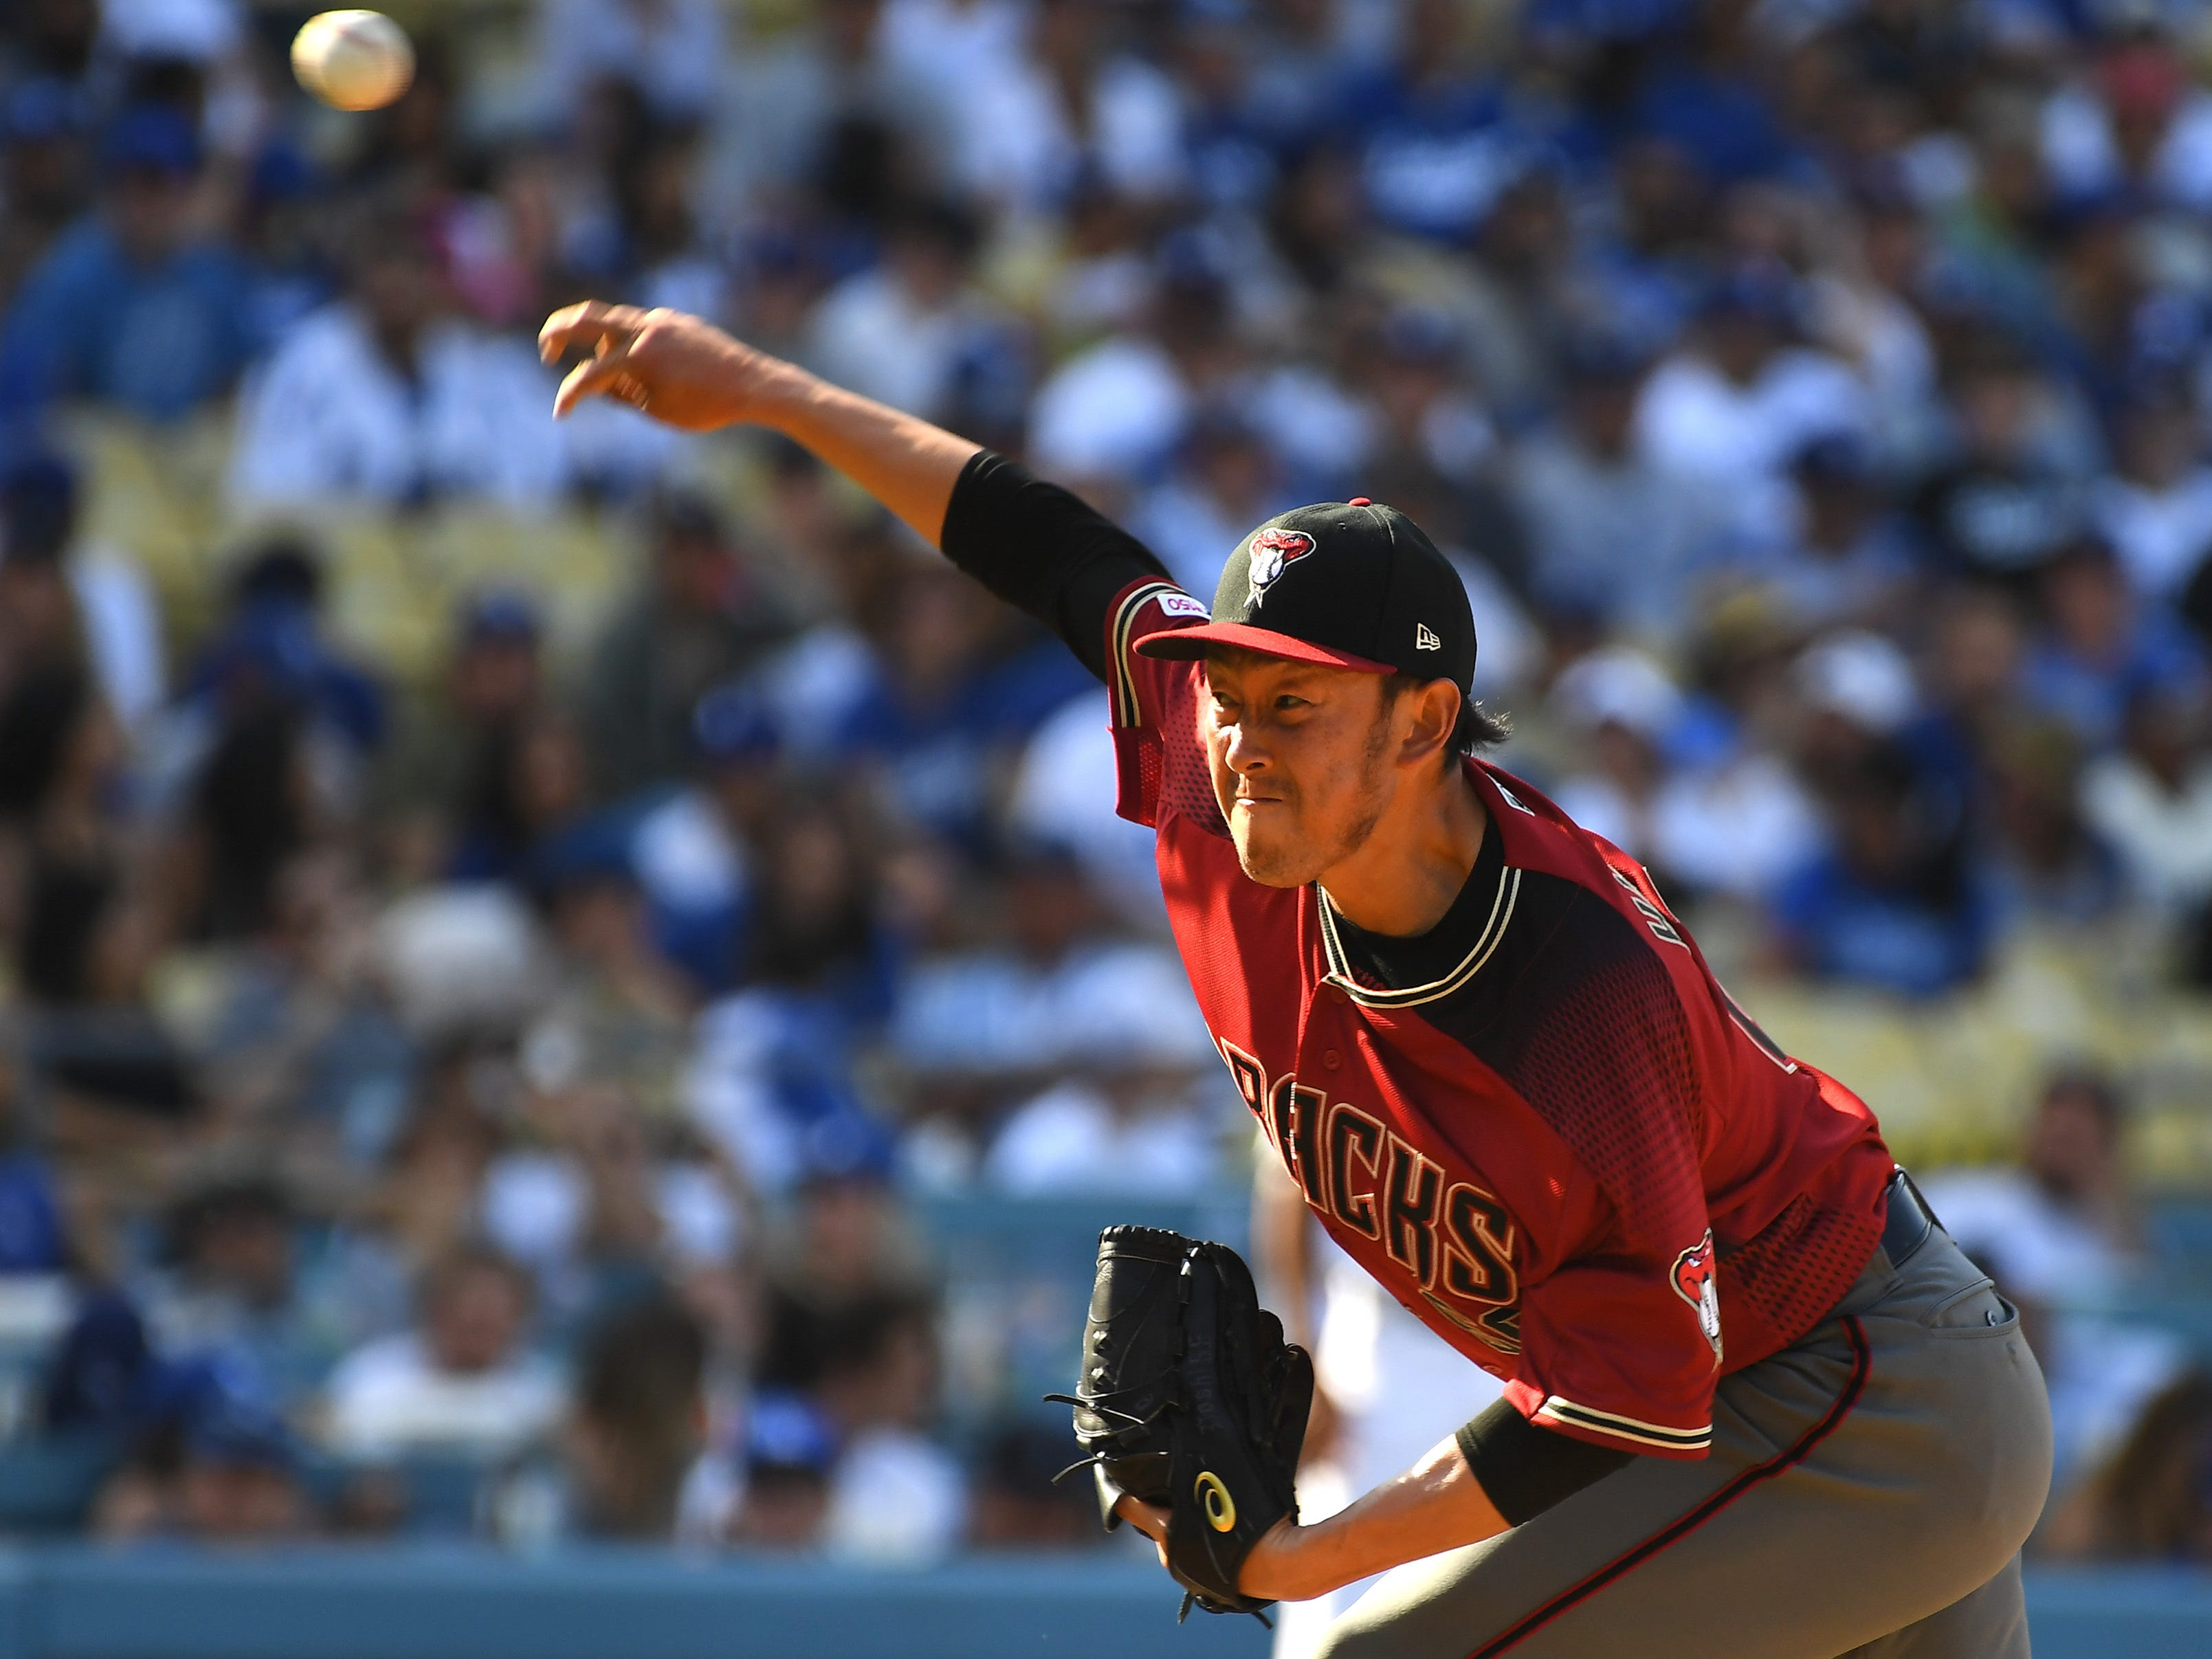 Mar 31, 2019; Los Angeles, CA, USA; Arizona Diamondbacks relief pitcher Yoshihisa Hirano (66) in the eighth inning of the game against the Los Angeles Dodgers at Dodger Stadium.